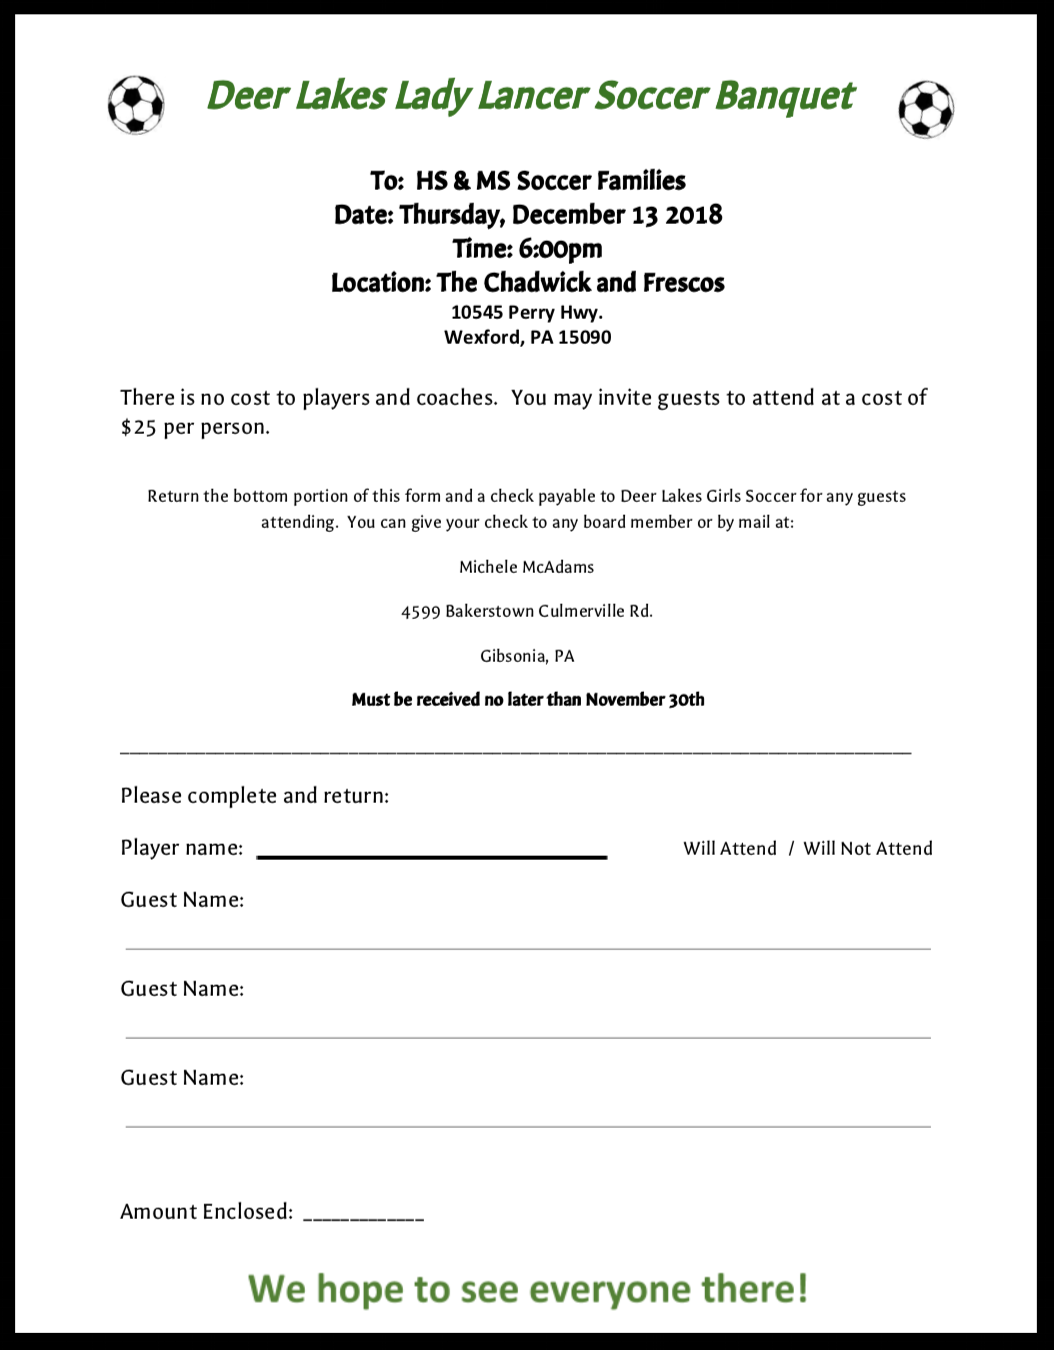 Banquet - Join us for a fun night celebrating our Lady Lancer soccer teams!